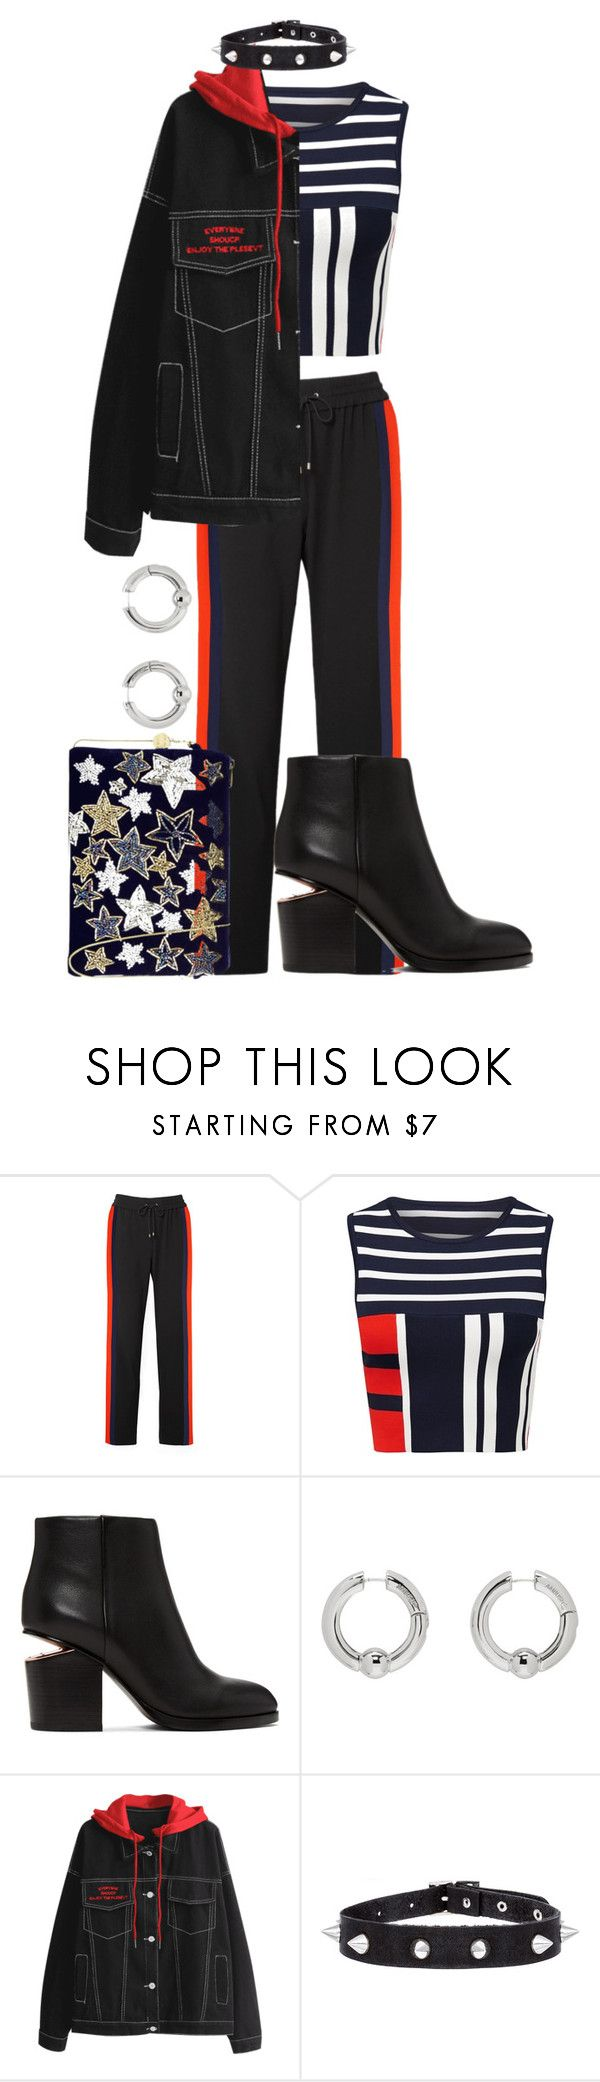 """Wait"" by maxine128 ❤ liked on Polyvore featuring Kenzo, Alexander Wang, AMBUSH and From St Xavier"